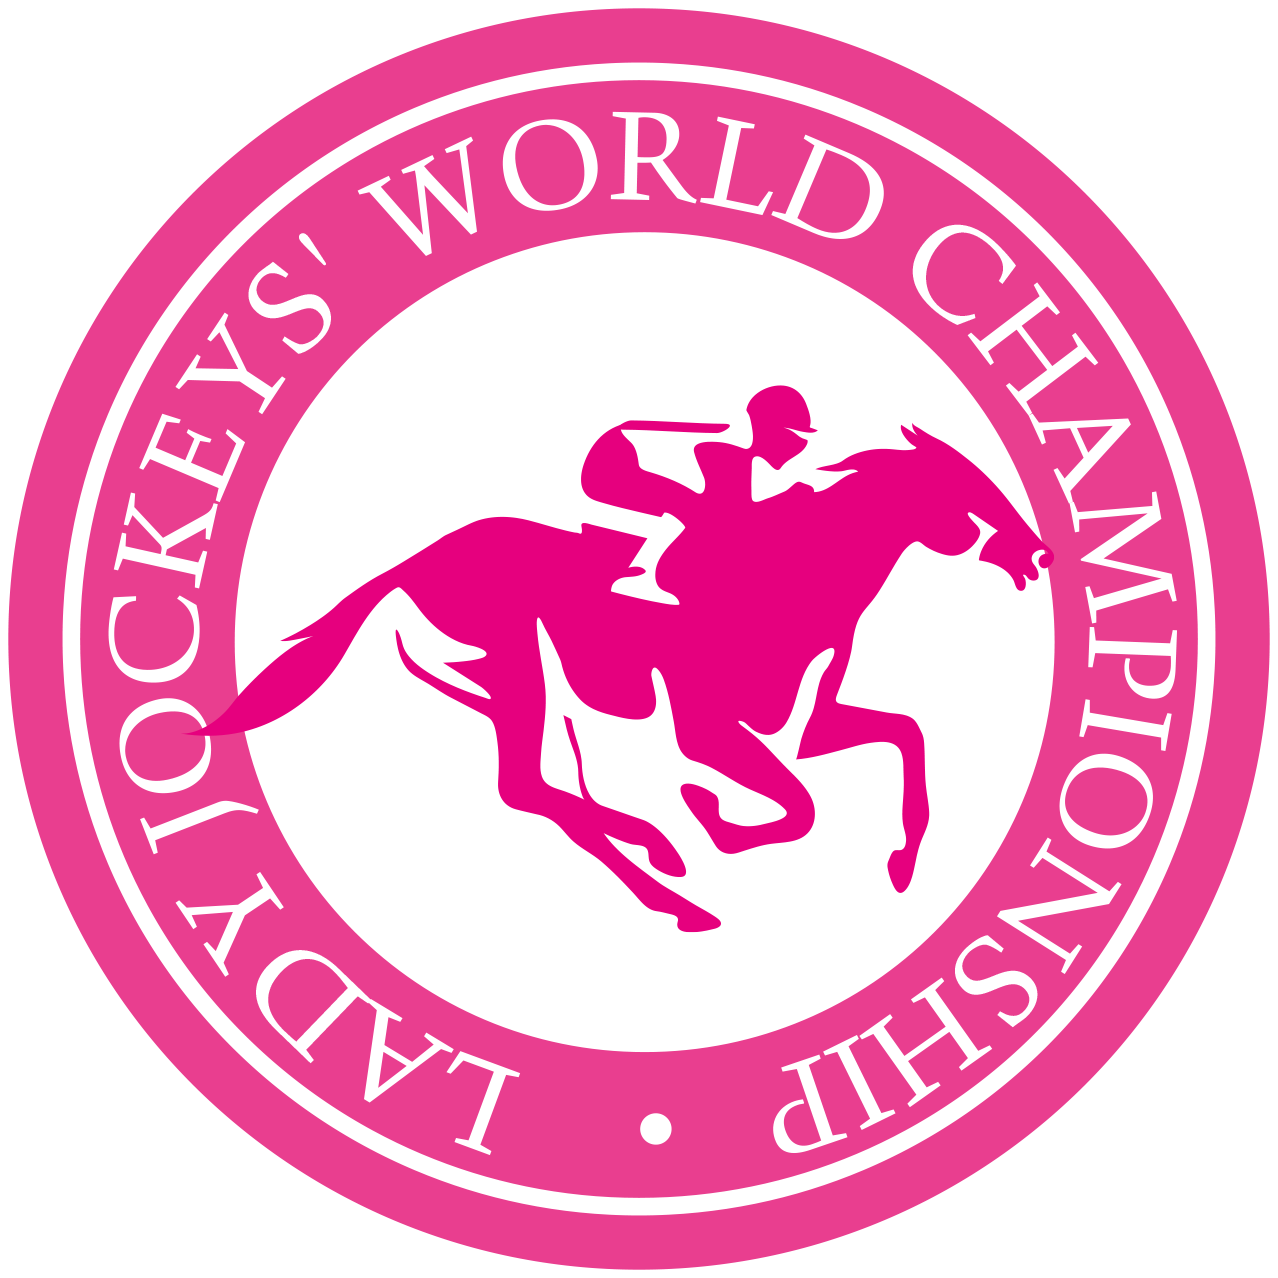 Lady Jockeys' Thoroughbred World Championship